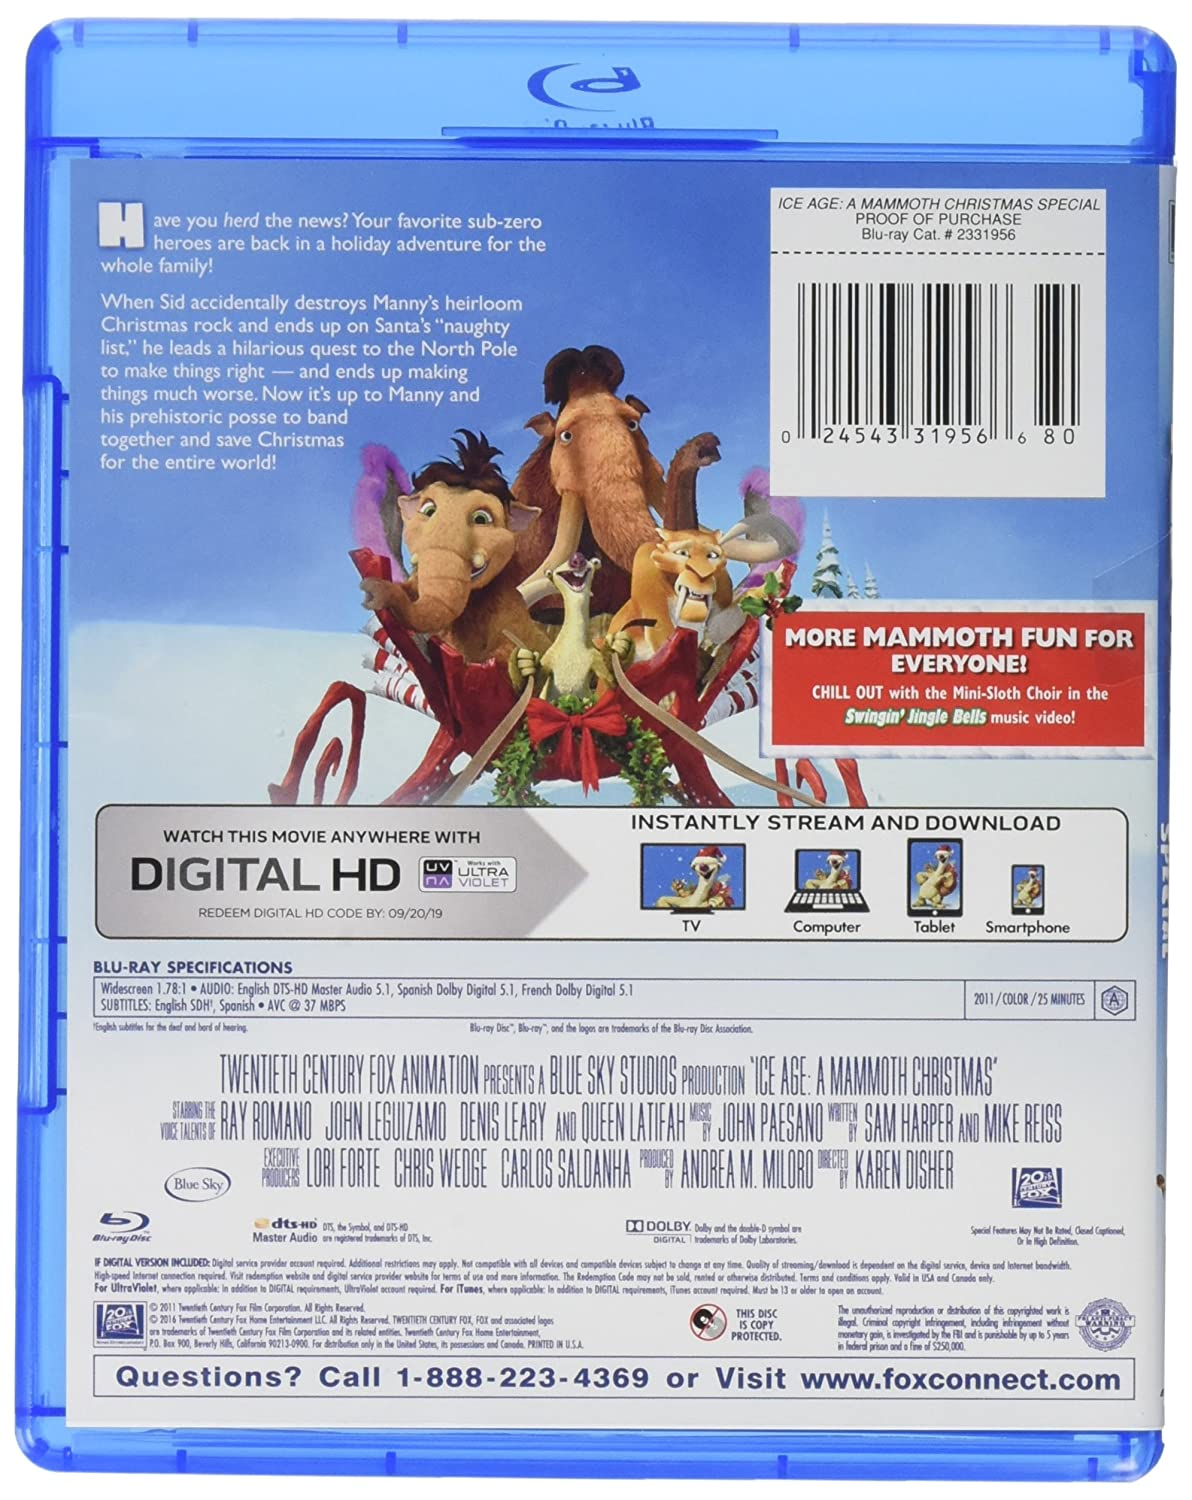 Amazon com: Ice Age: A Mammoth Christmas Special Blu-ray